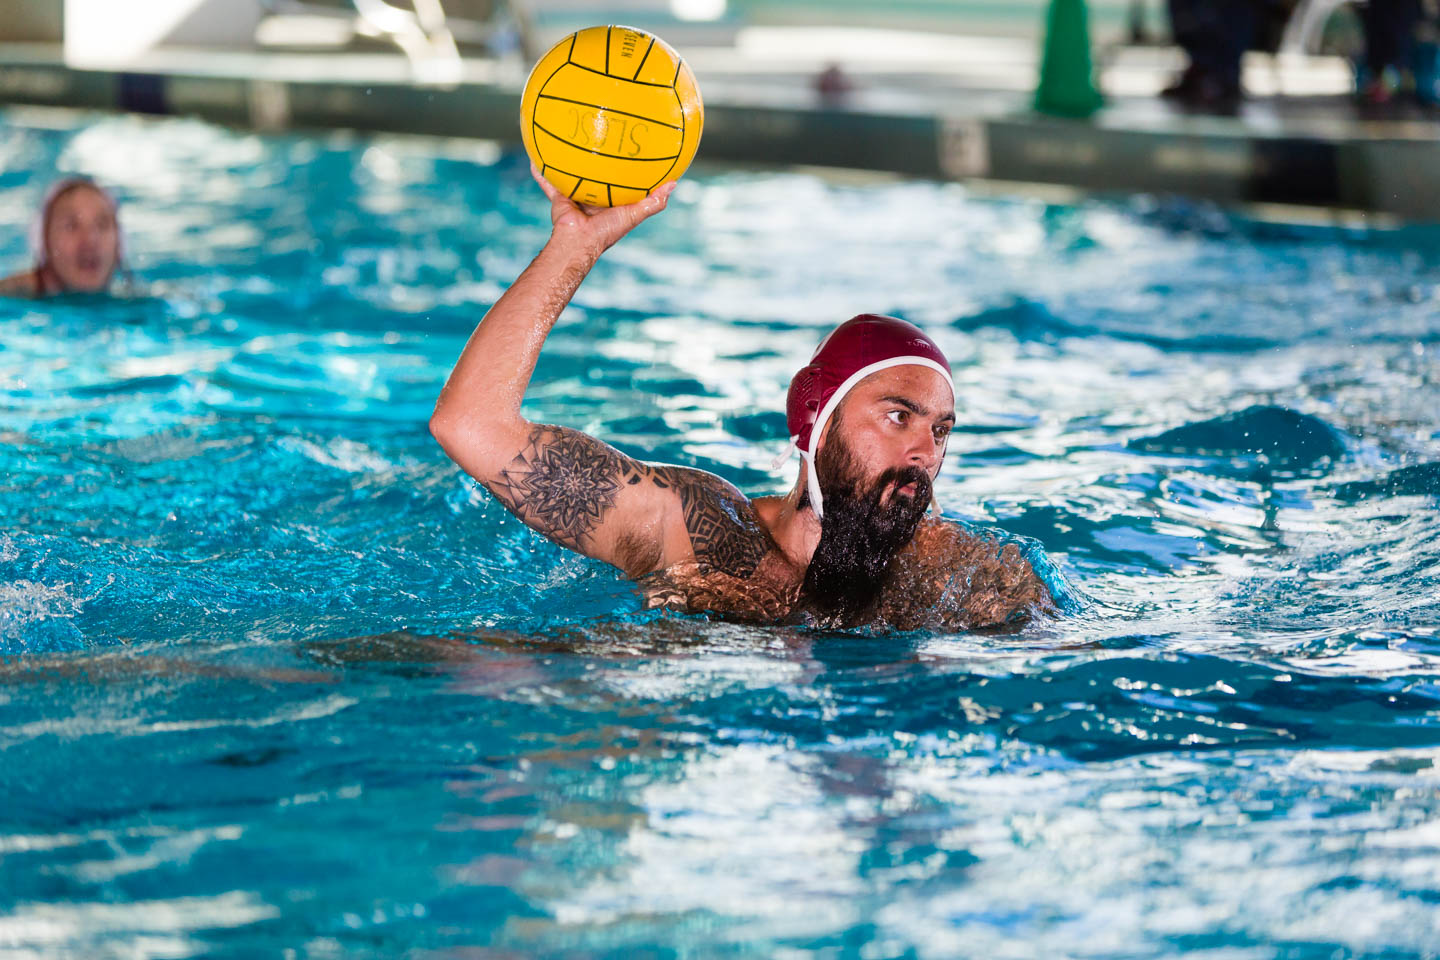 Farook takes a shot on goal during a water polo game